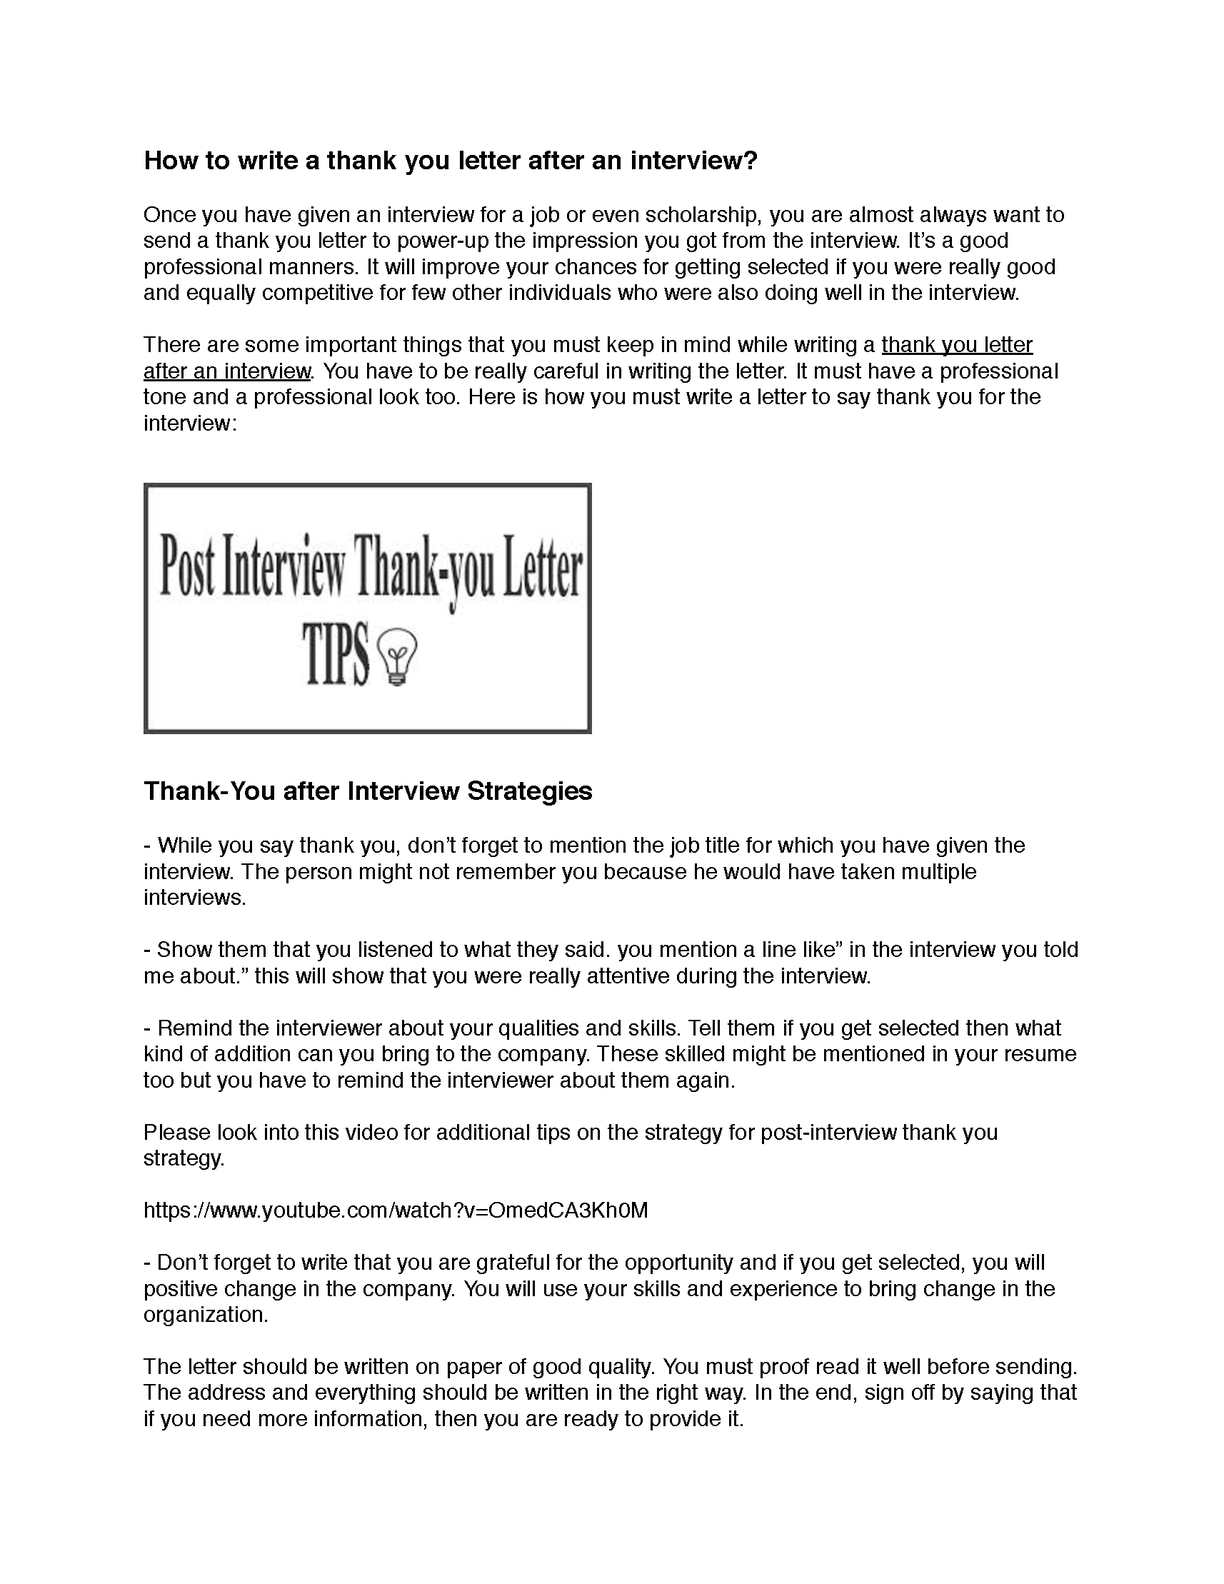 calaméo to write thank you message after interview letter for sending resume p1 medical Resume Thank You Letter For Sending Resume